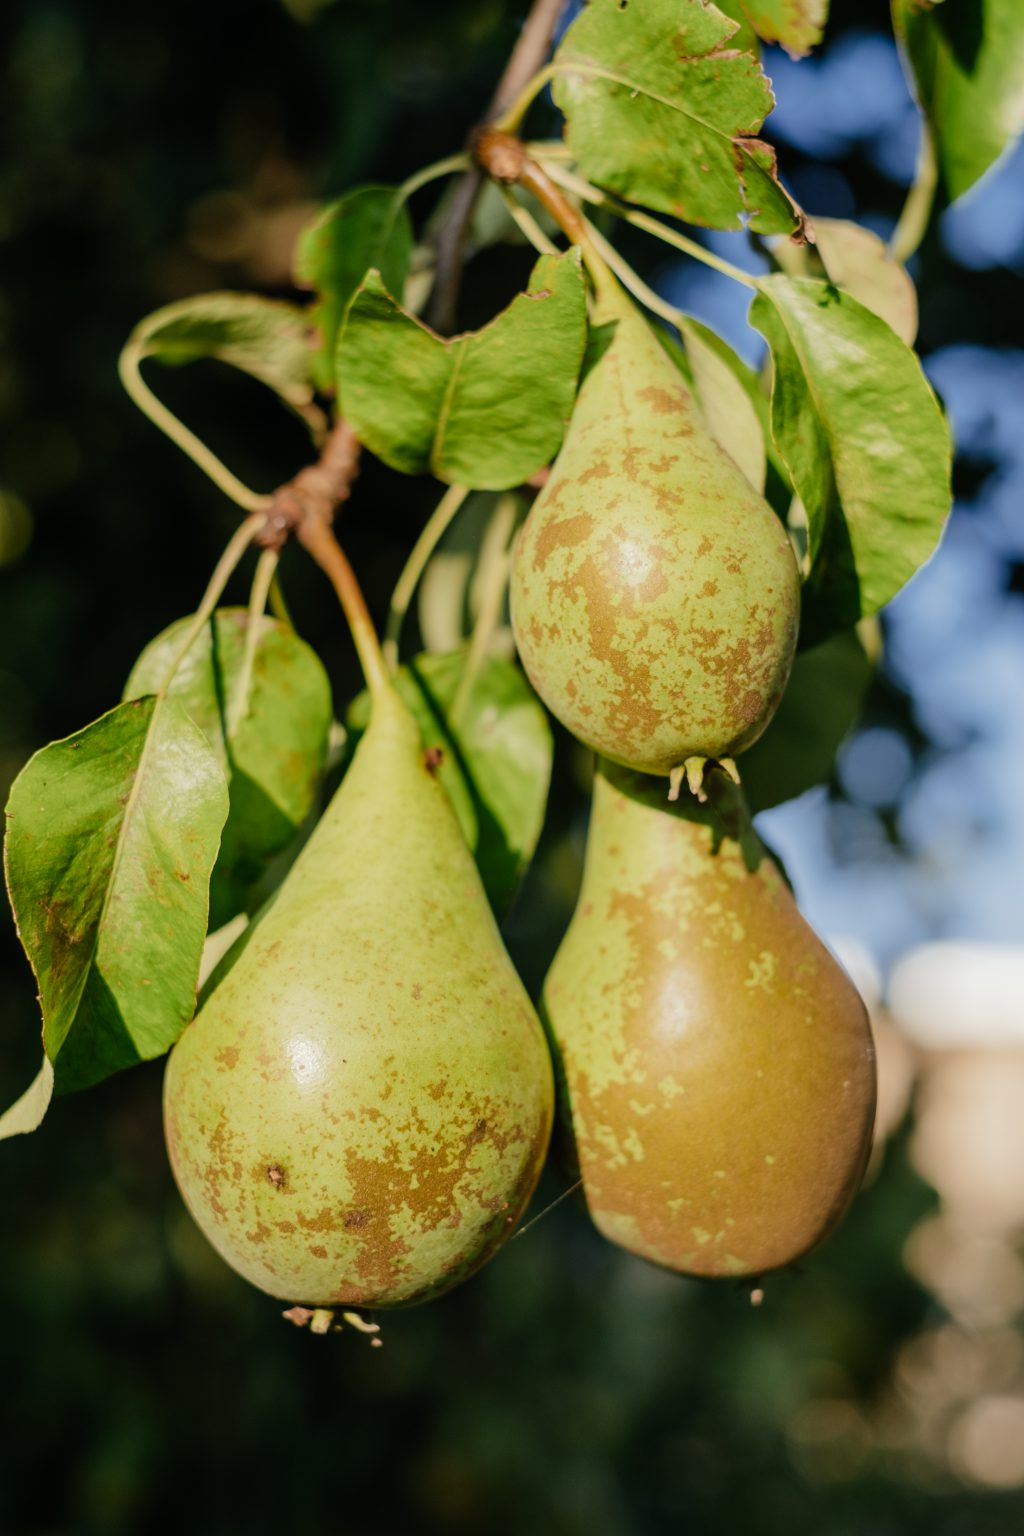 Pears on a tree 2 - free stock photo